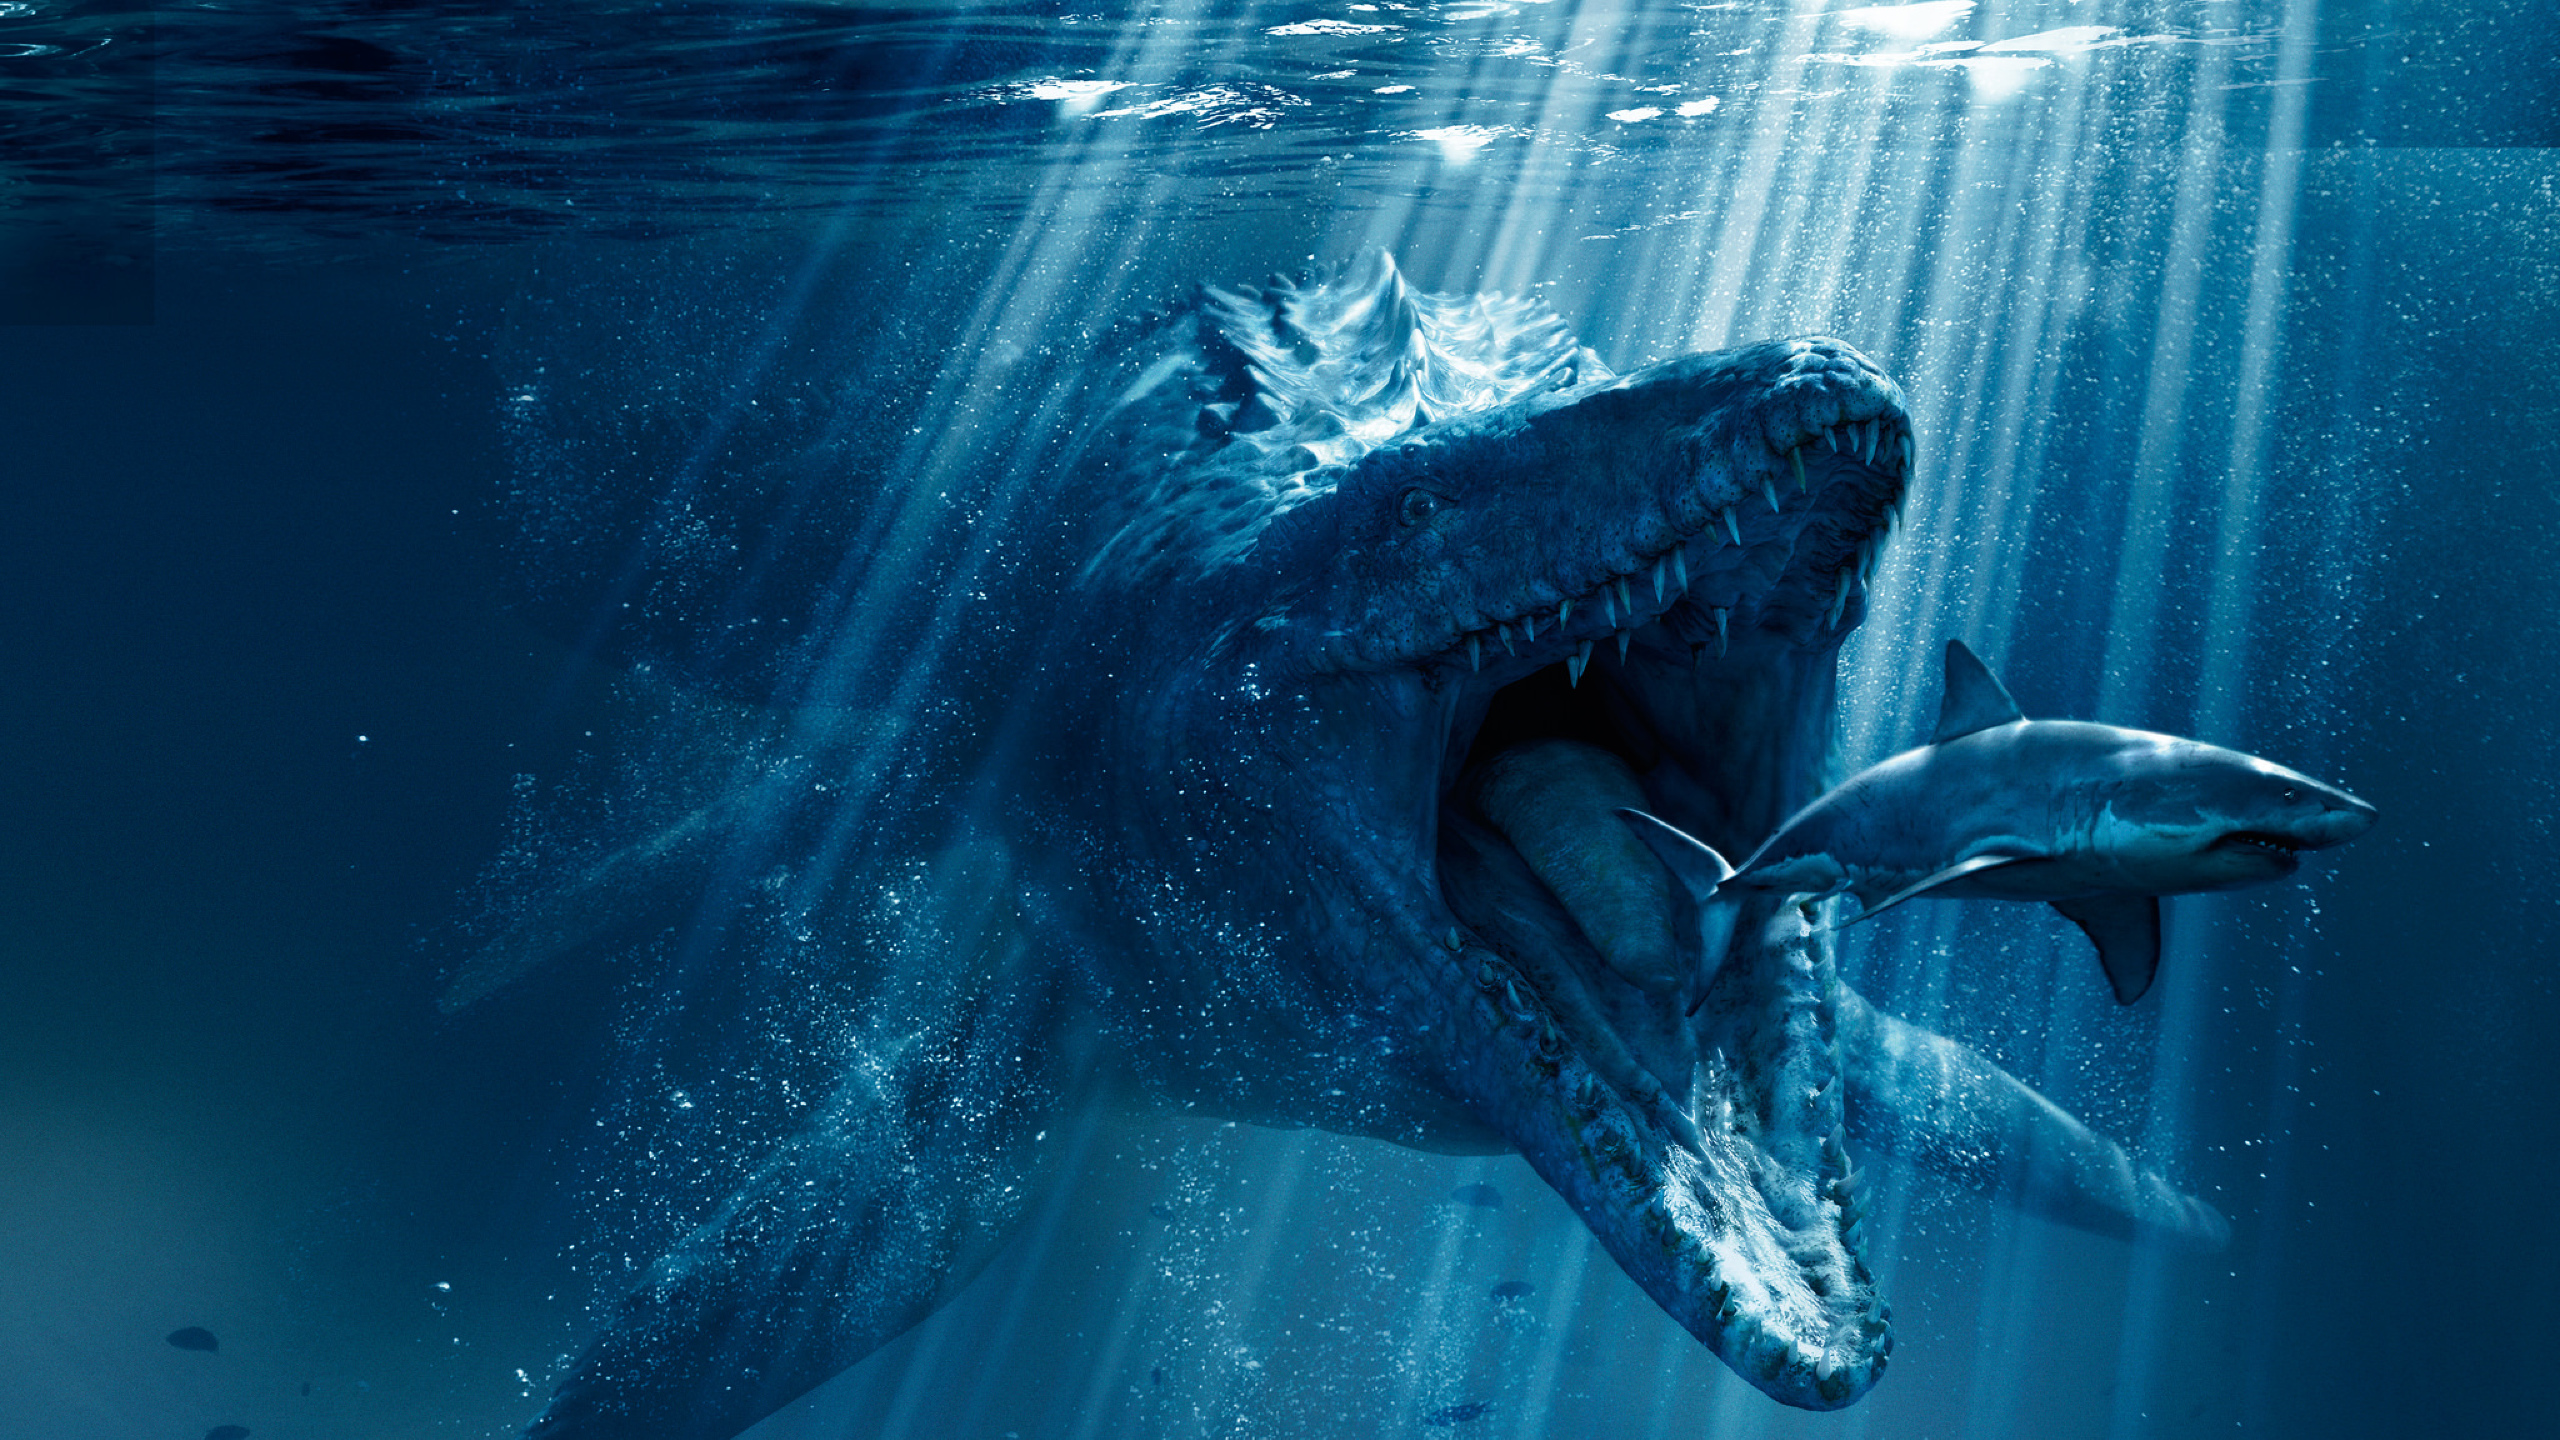 28 Mosasaurus Wallpaper On Wallpapersafari